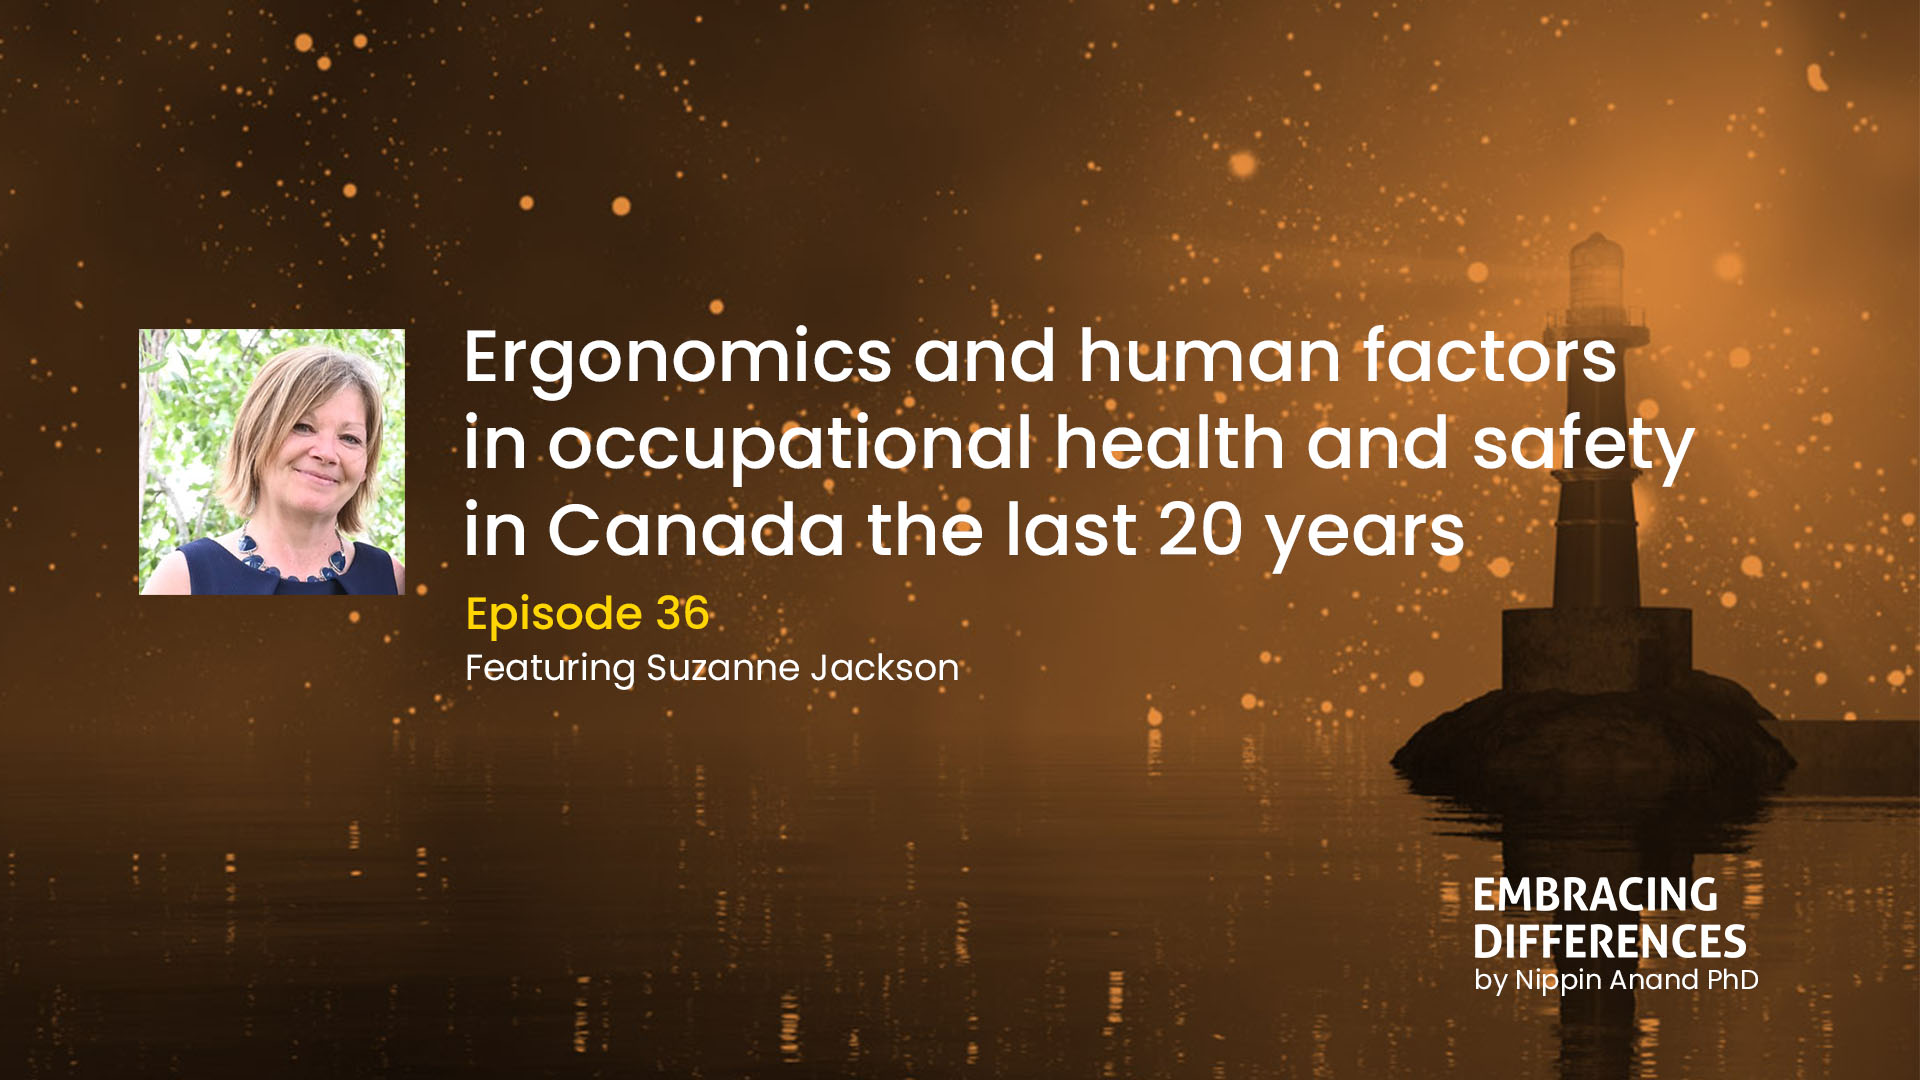 Ergonomics and human factors in occupational health and safety in Canada the last 20 years